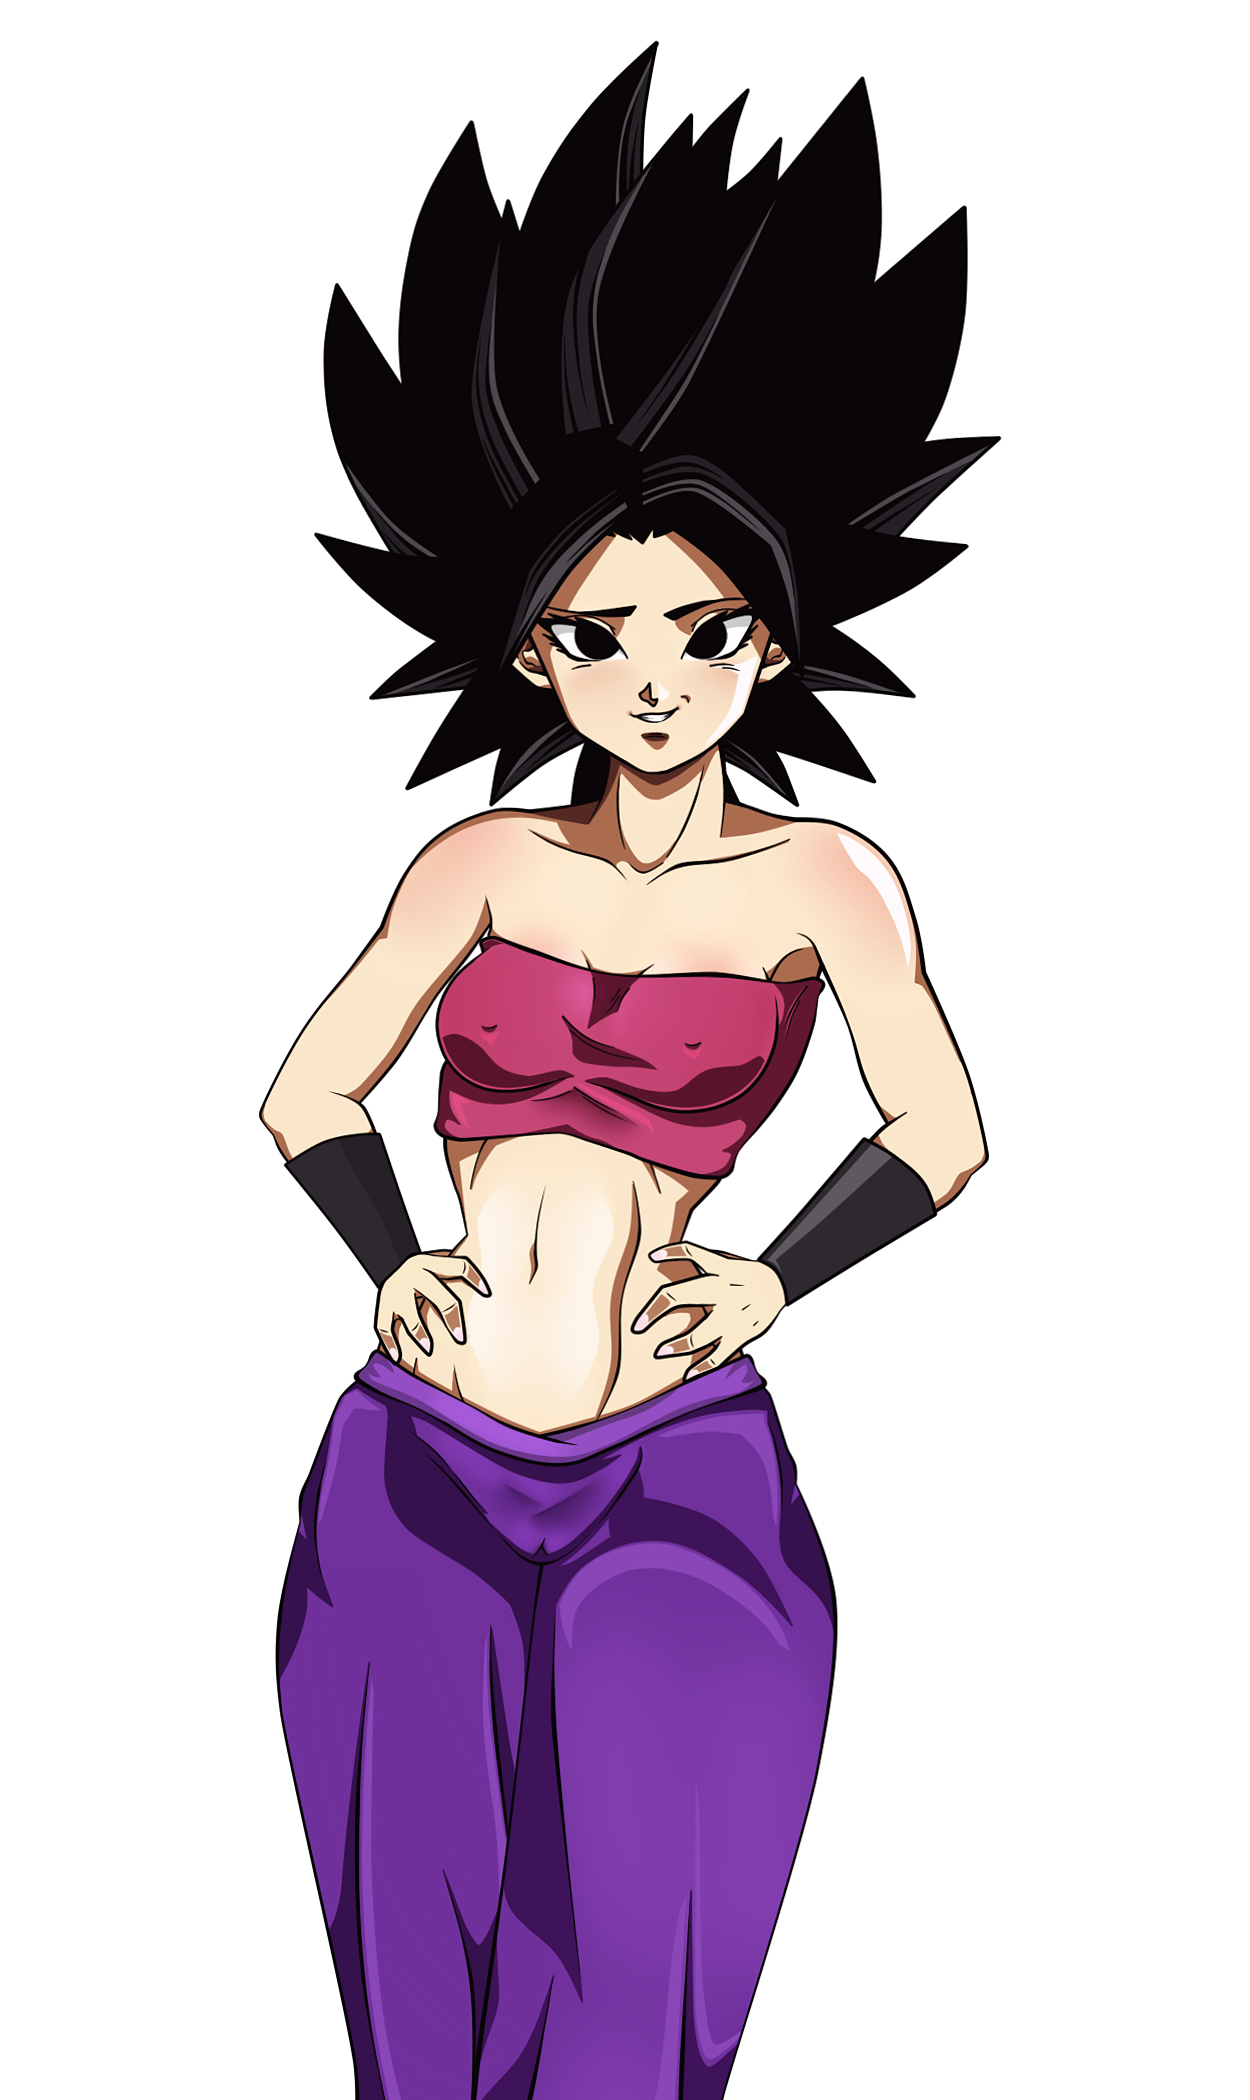 Wedgie drawing dragon ball z. Caulifla base normal super